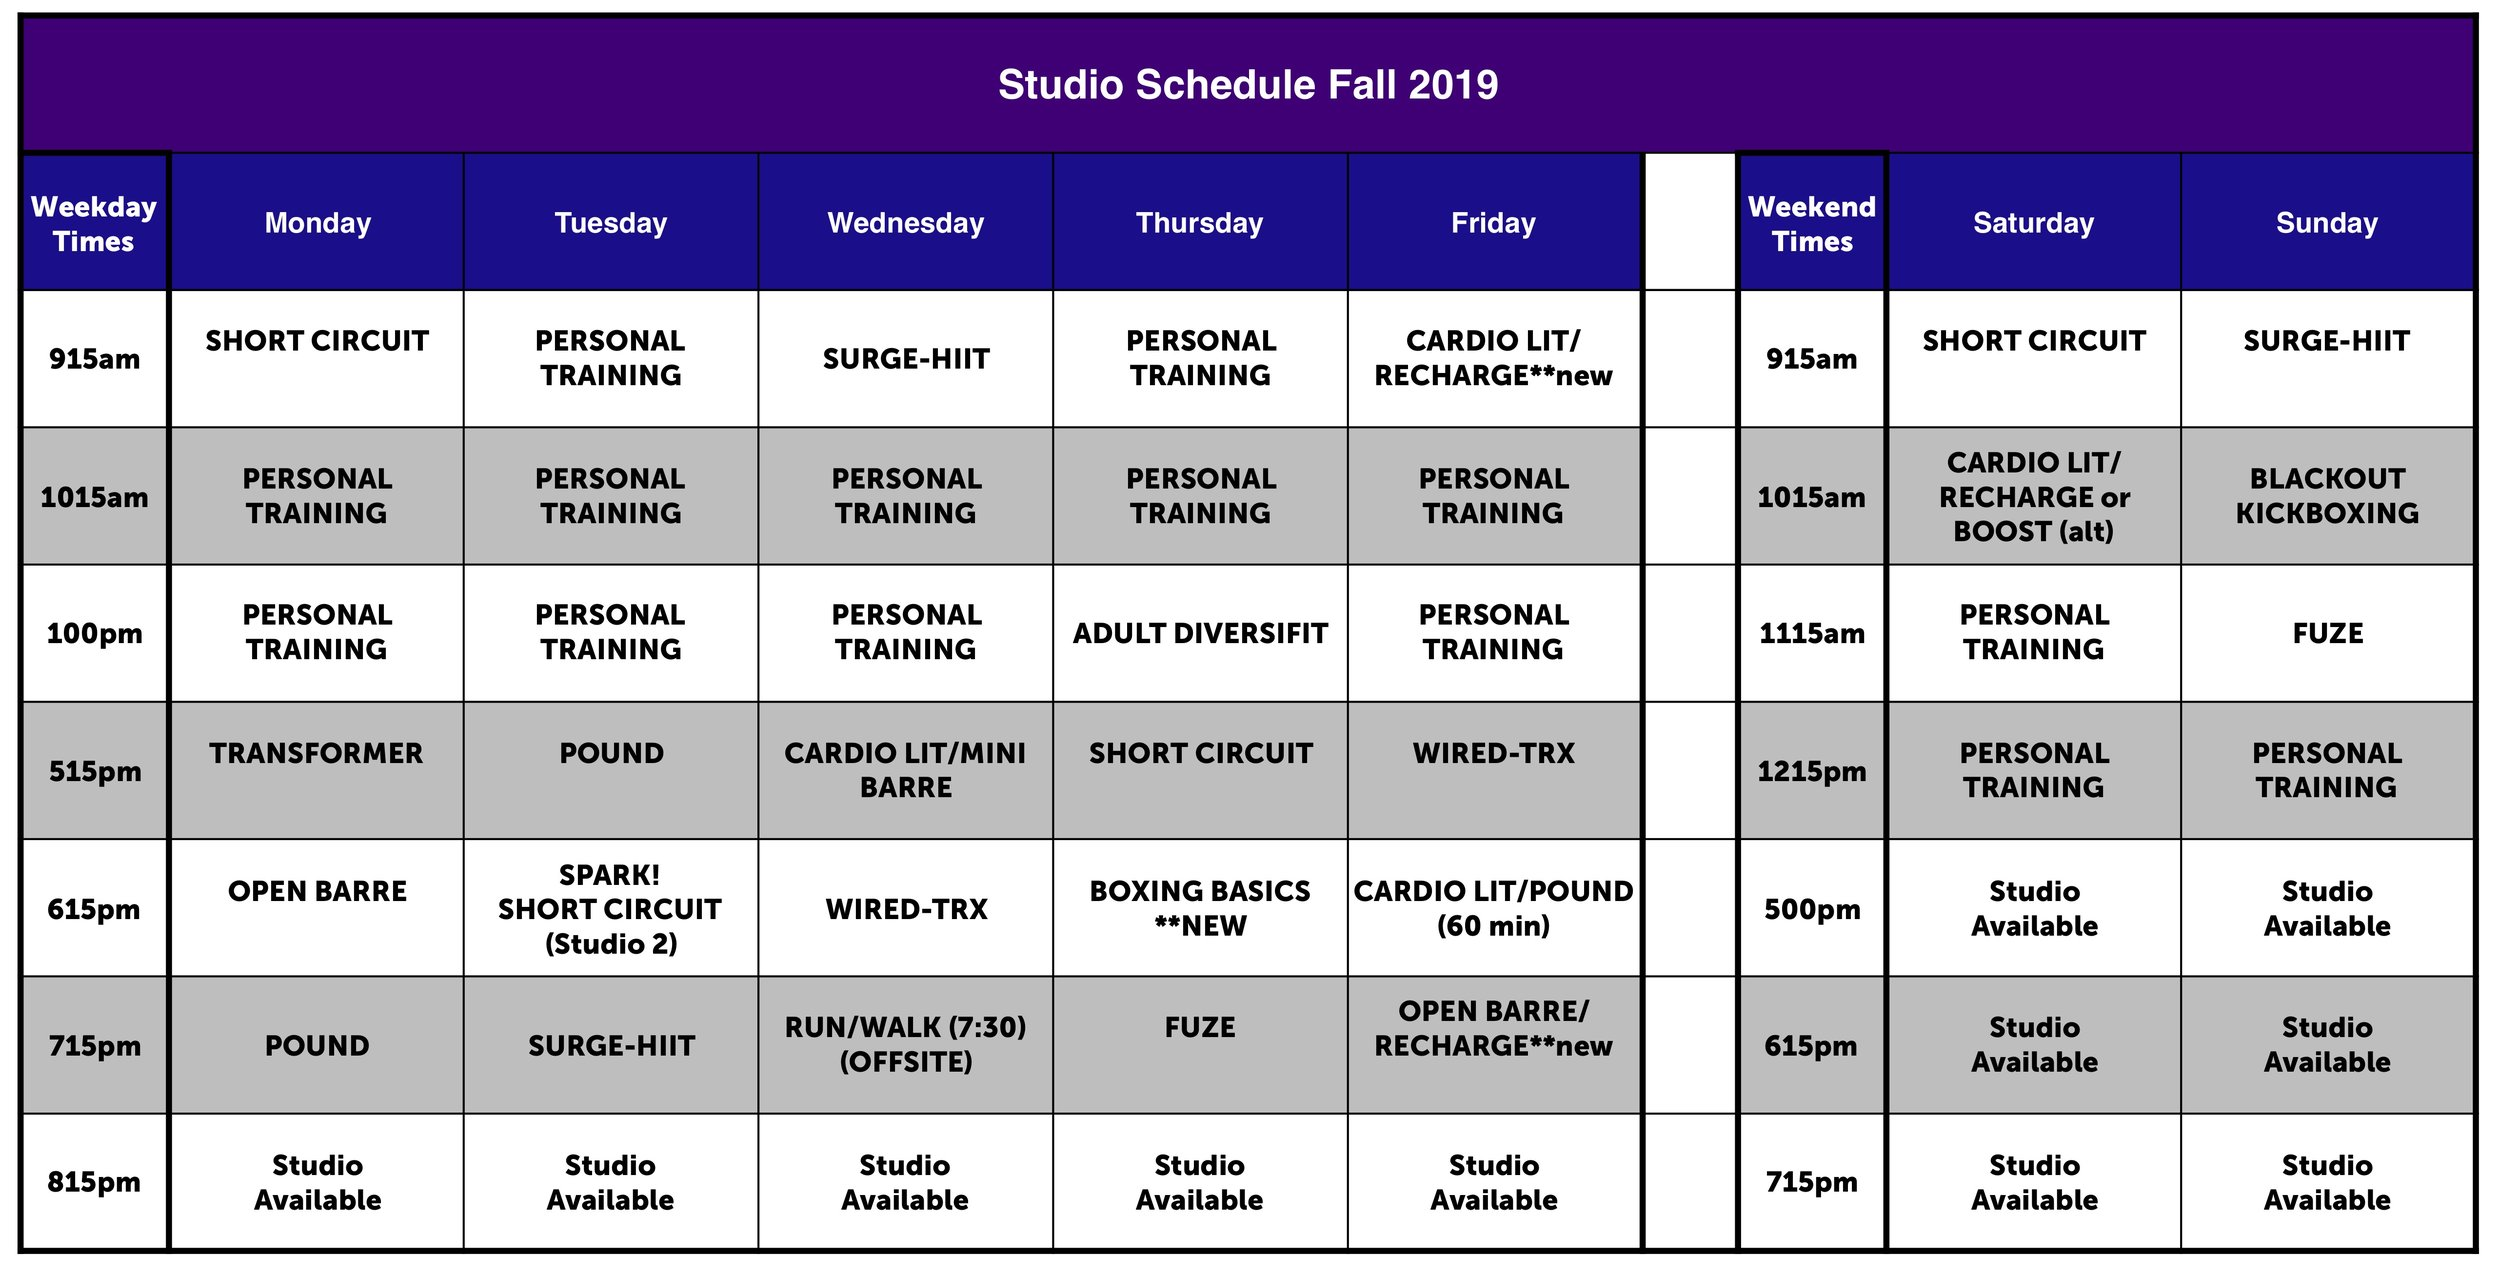 **classes subject to change  ***Studio 2 is is available for Personal Training unless noted otherwise